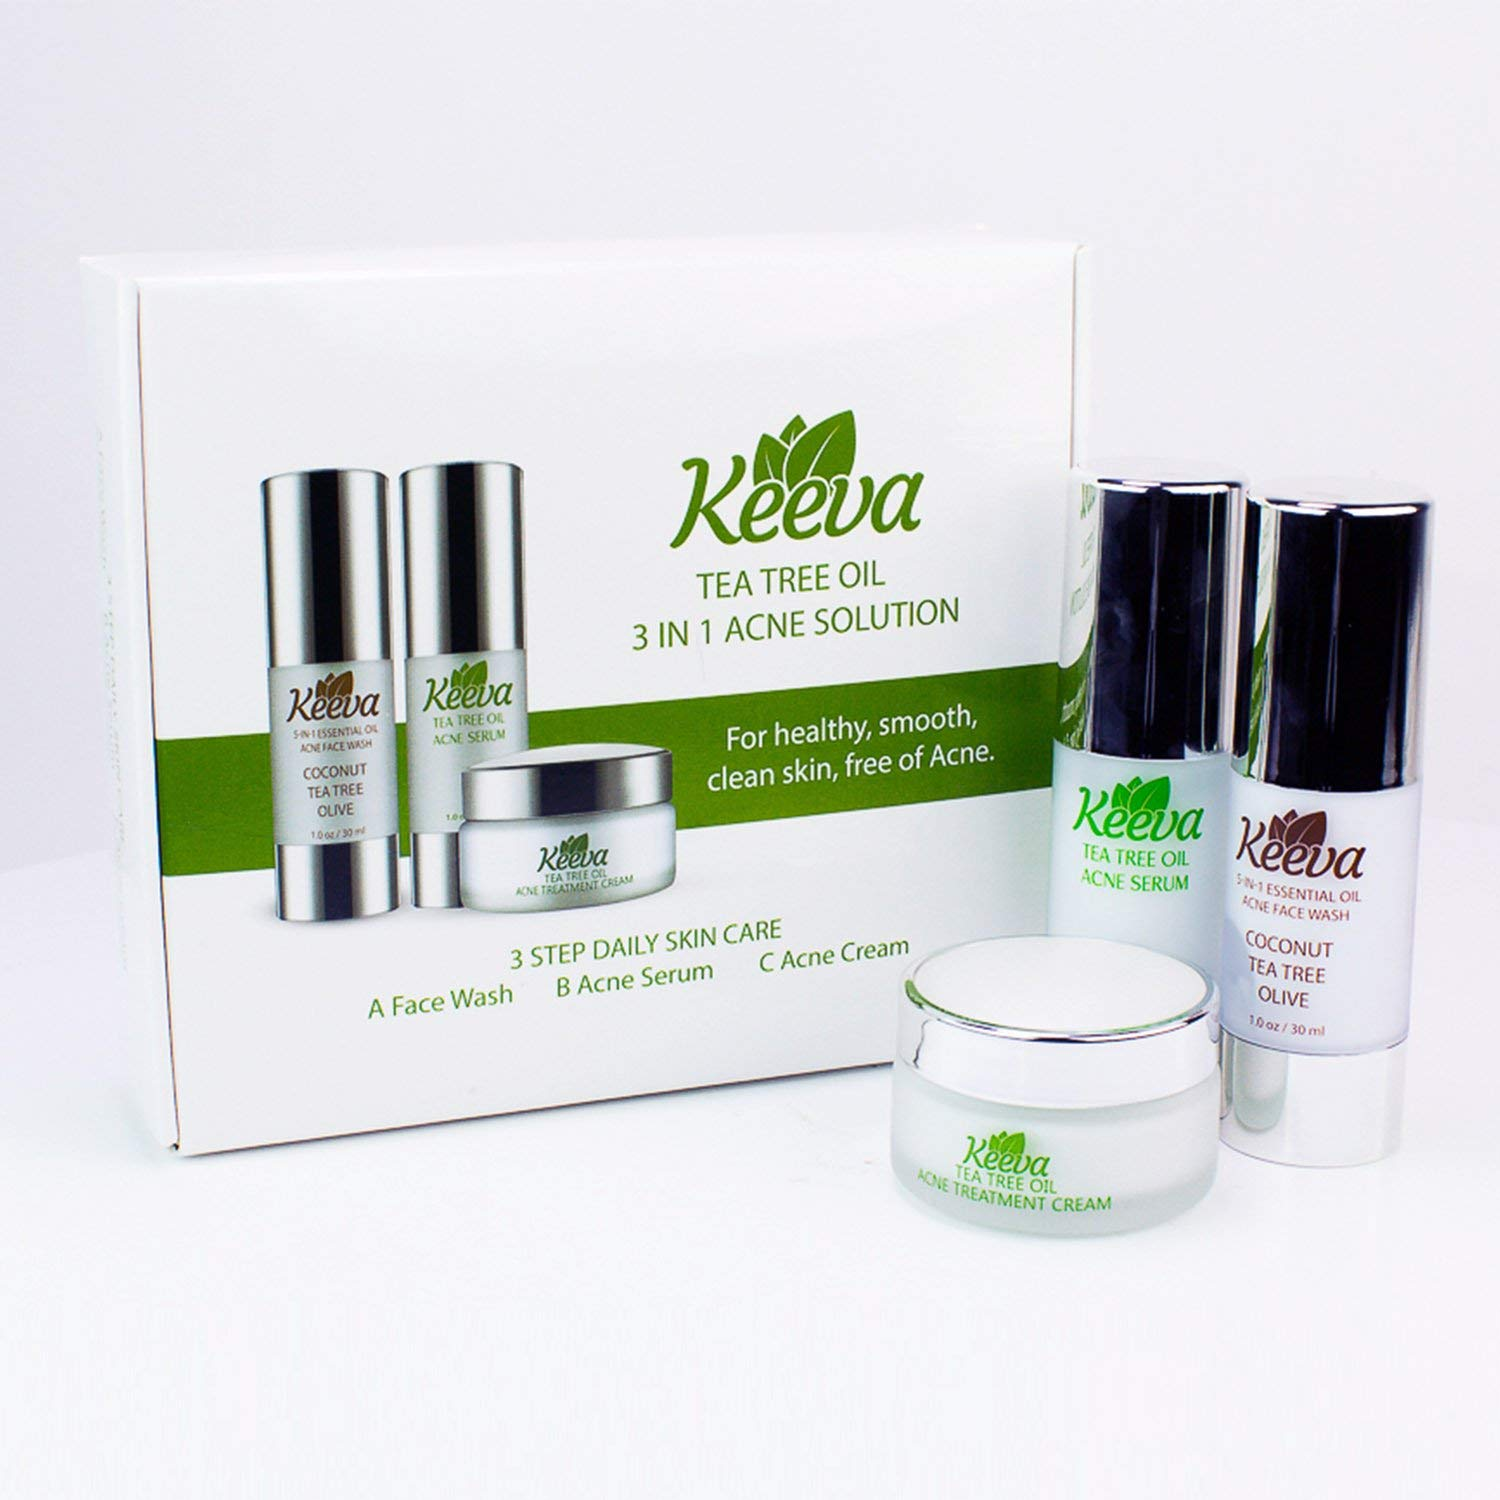 The entire 3-piece Keeva skin treatment kit